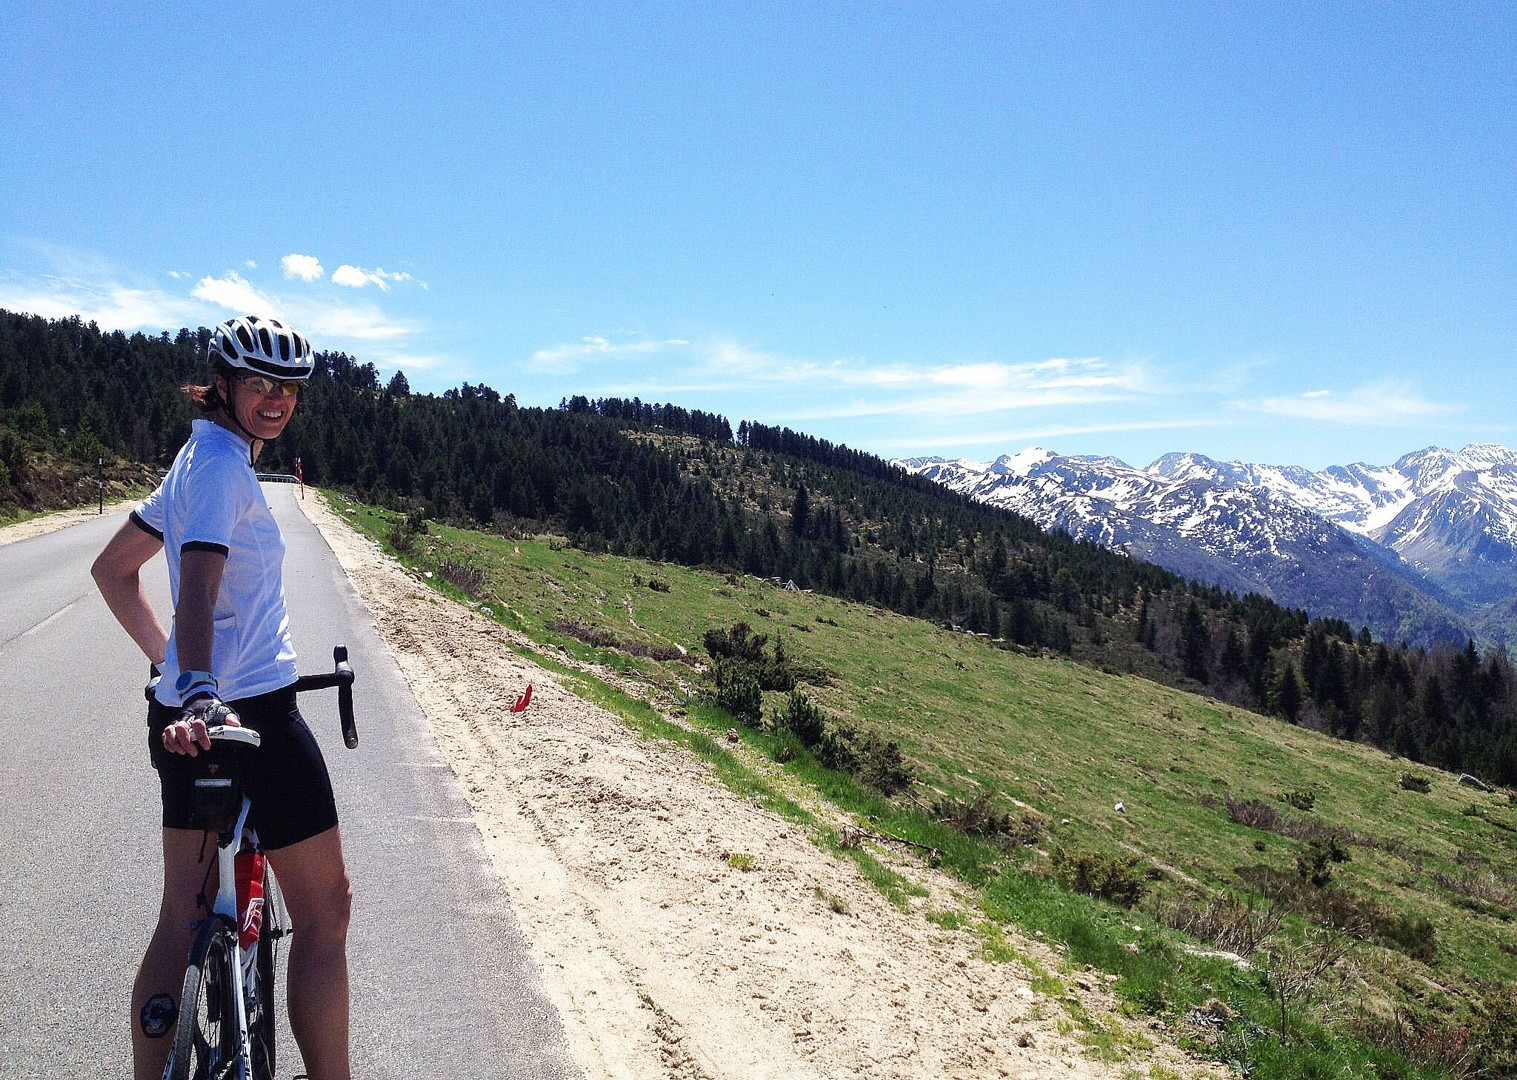 france-pyrenee-fitness-week-road-cycling.jpg - France - Pyrenees Fitness Week - Guided Road Cycling Holiday (Grade 3-4) - Road Cycling